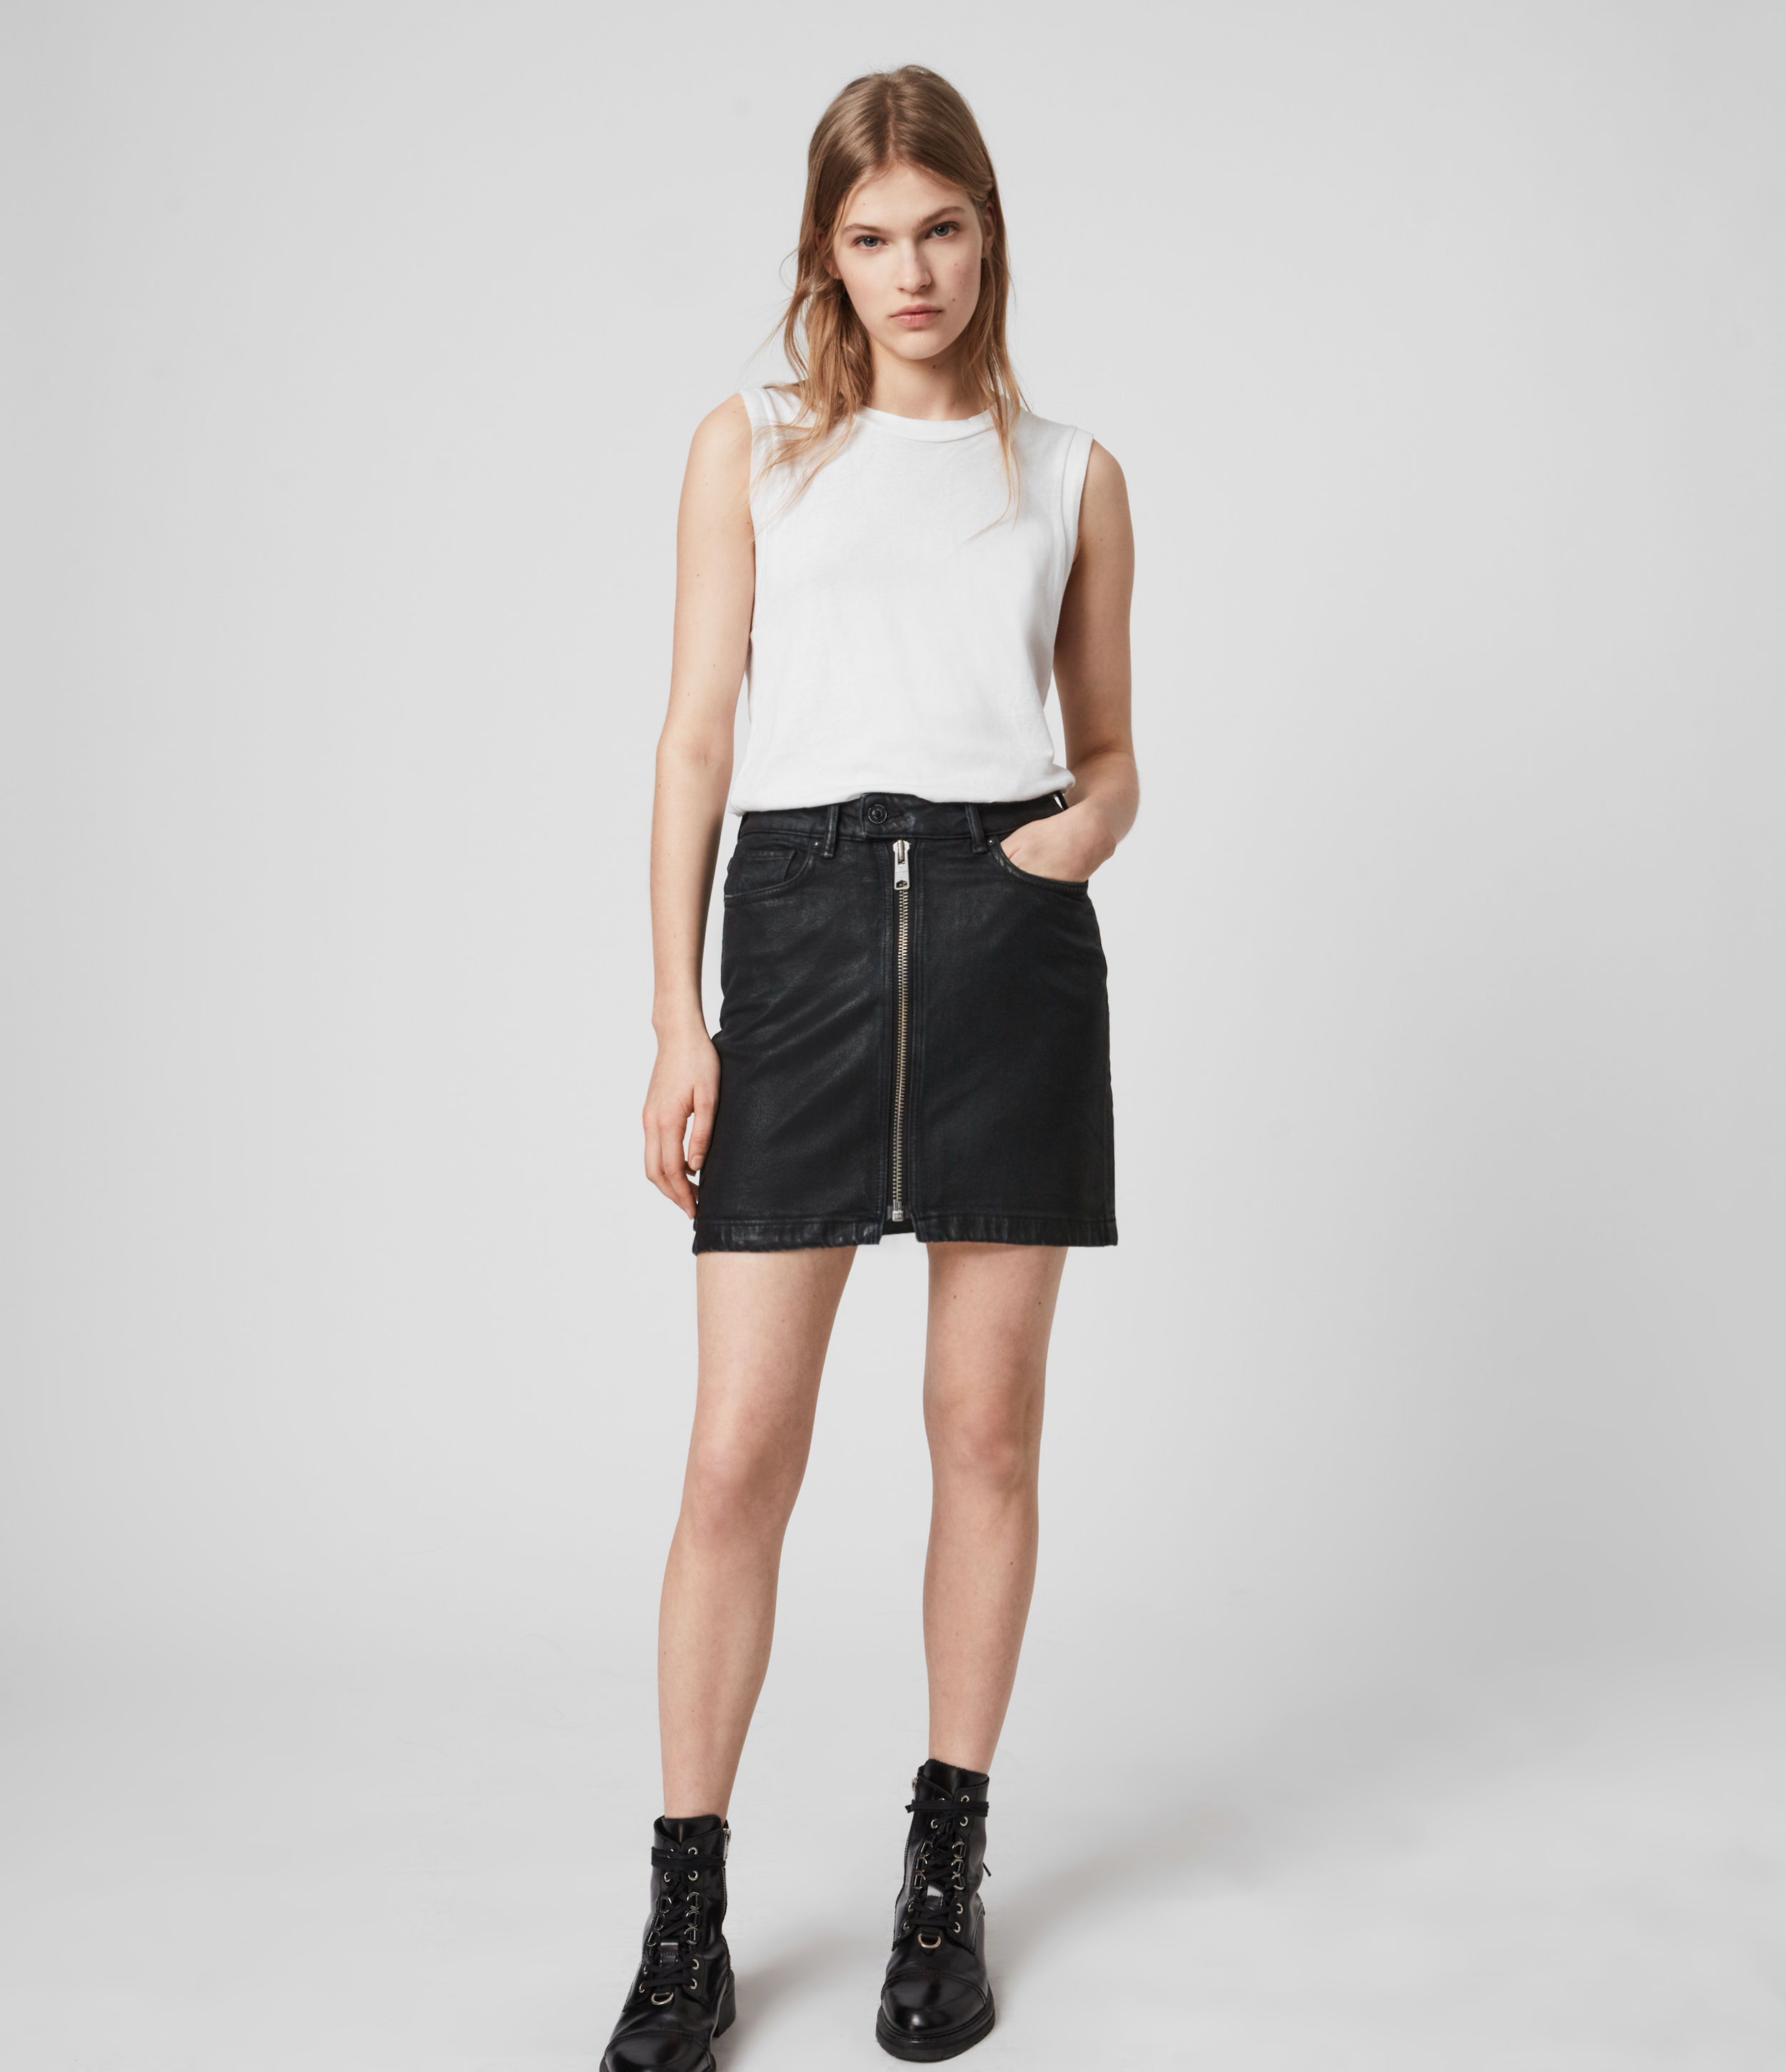 AllSaints Sammy Denim Skirt